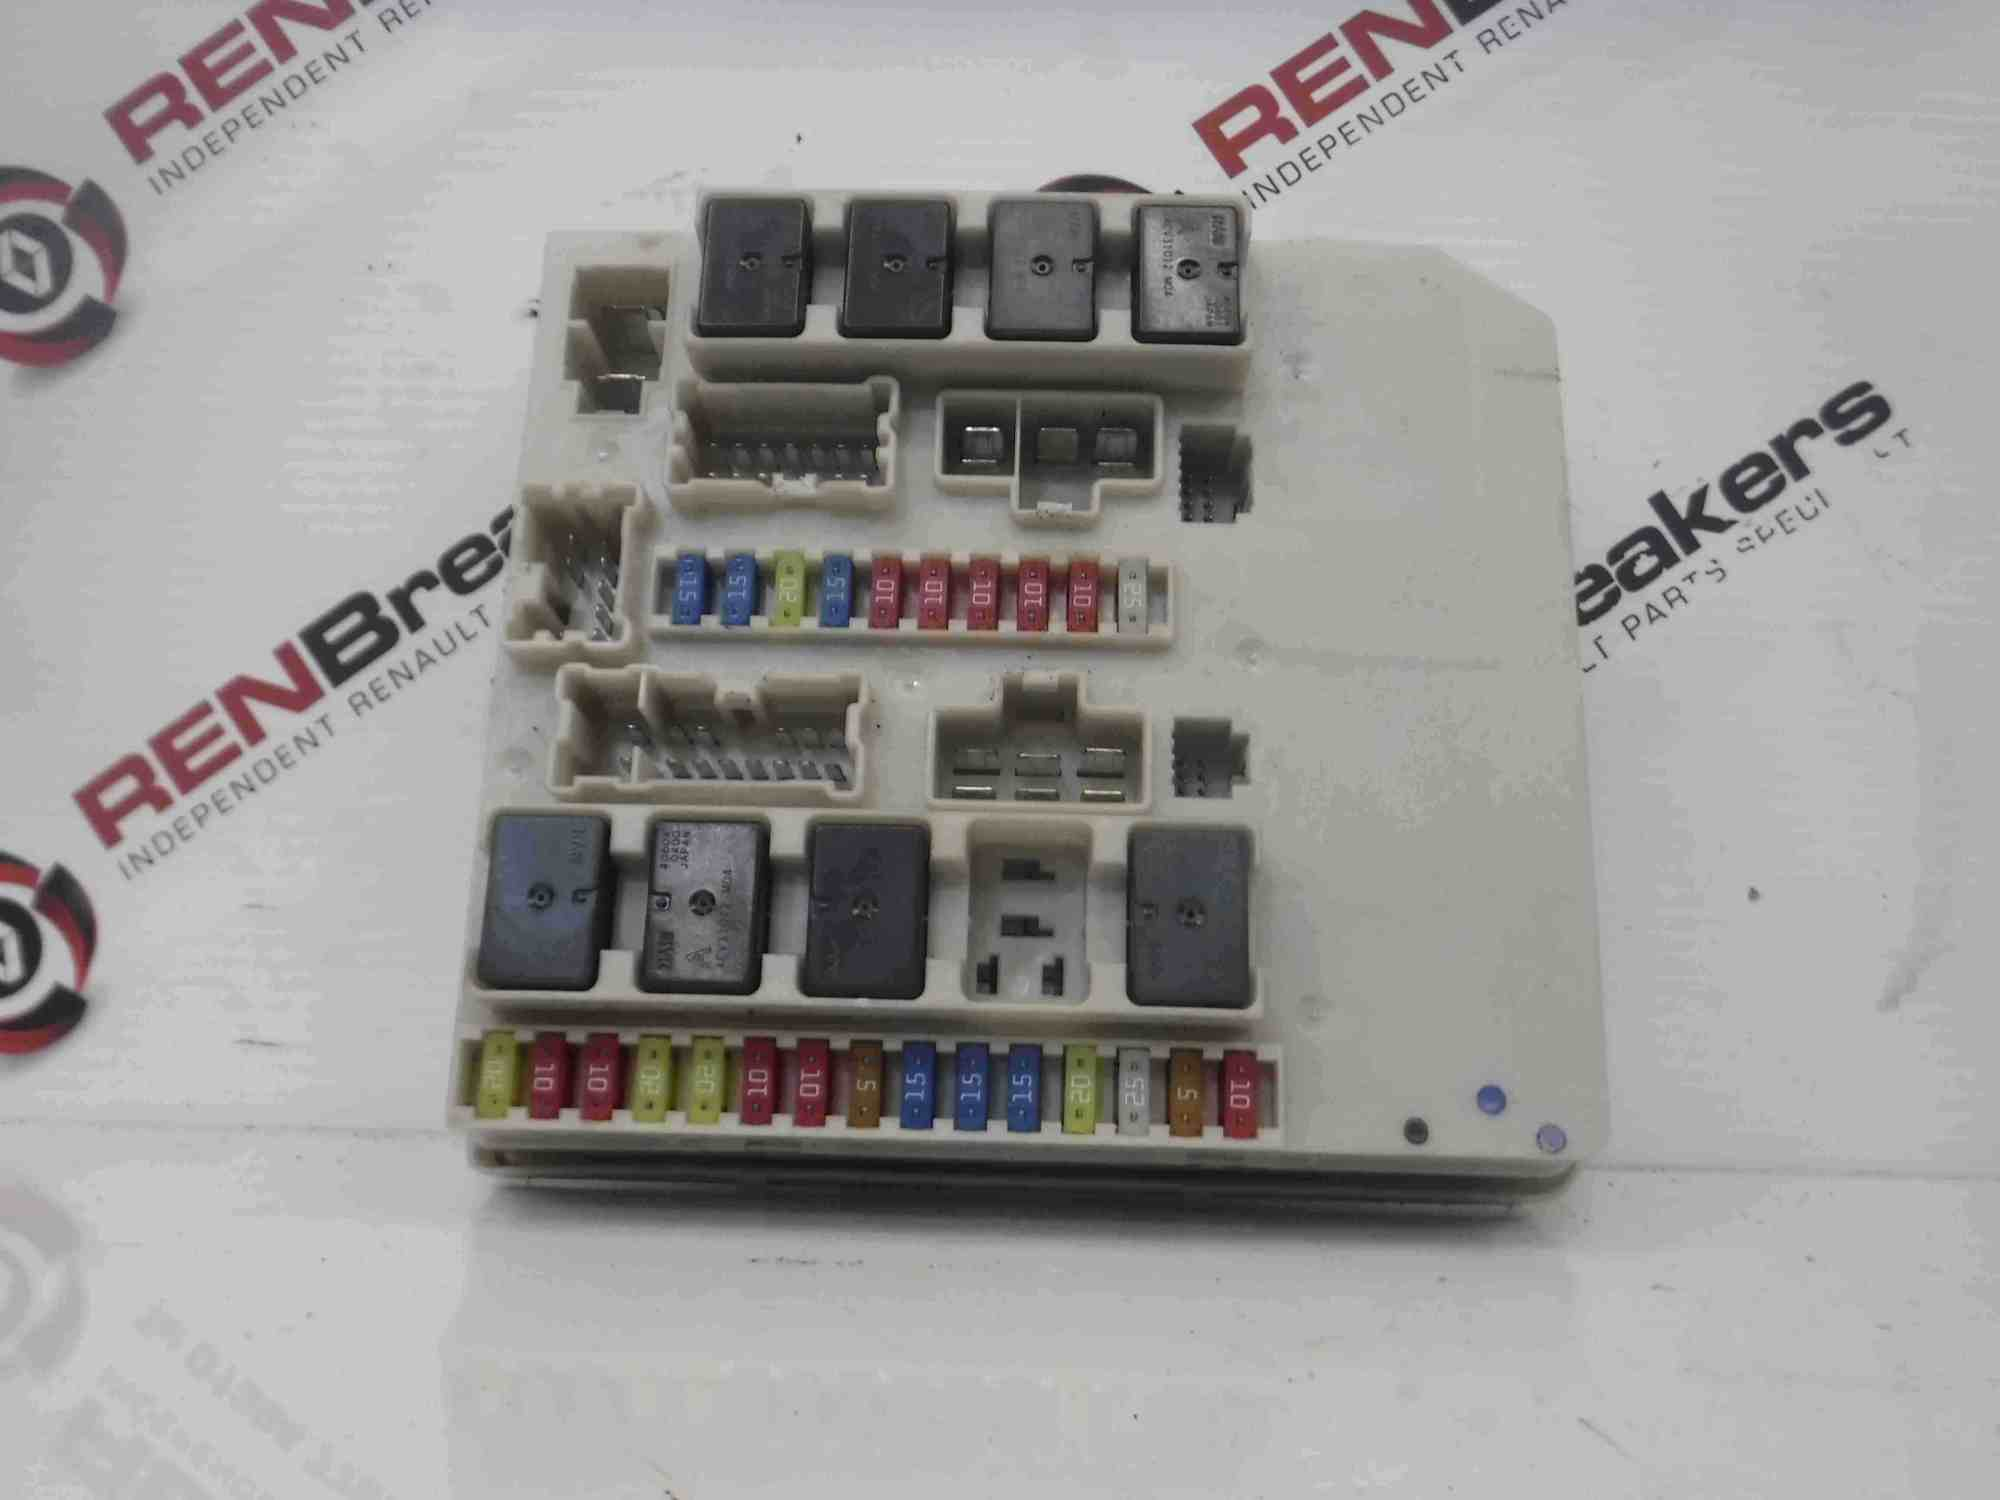 hight resolution of renault modus 2004 2008 engine fuse box upc unit 233293g store renault breakers used renault car parts spares specialist